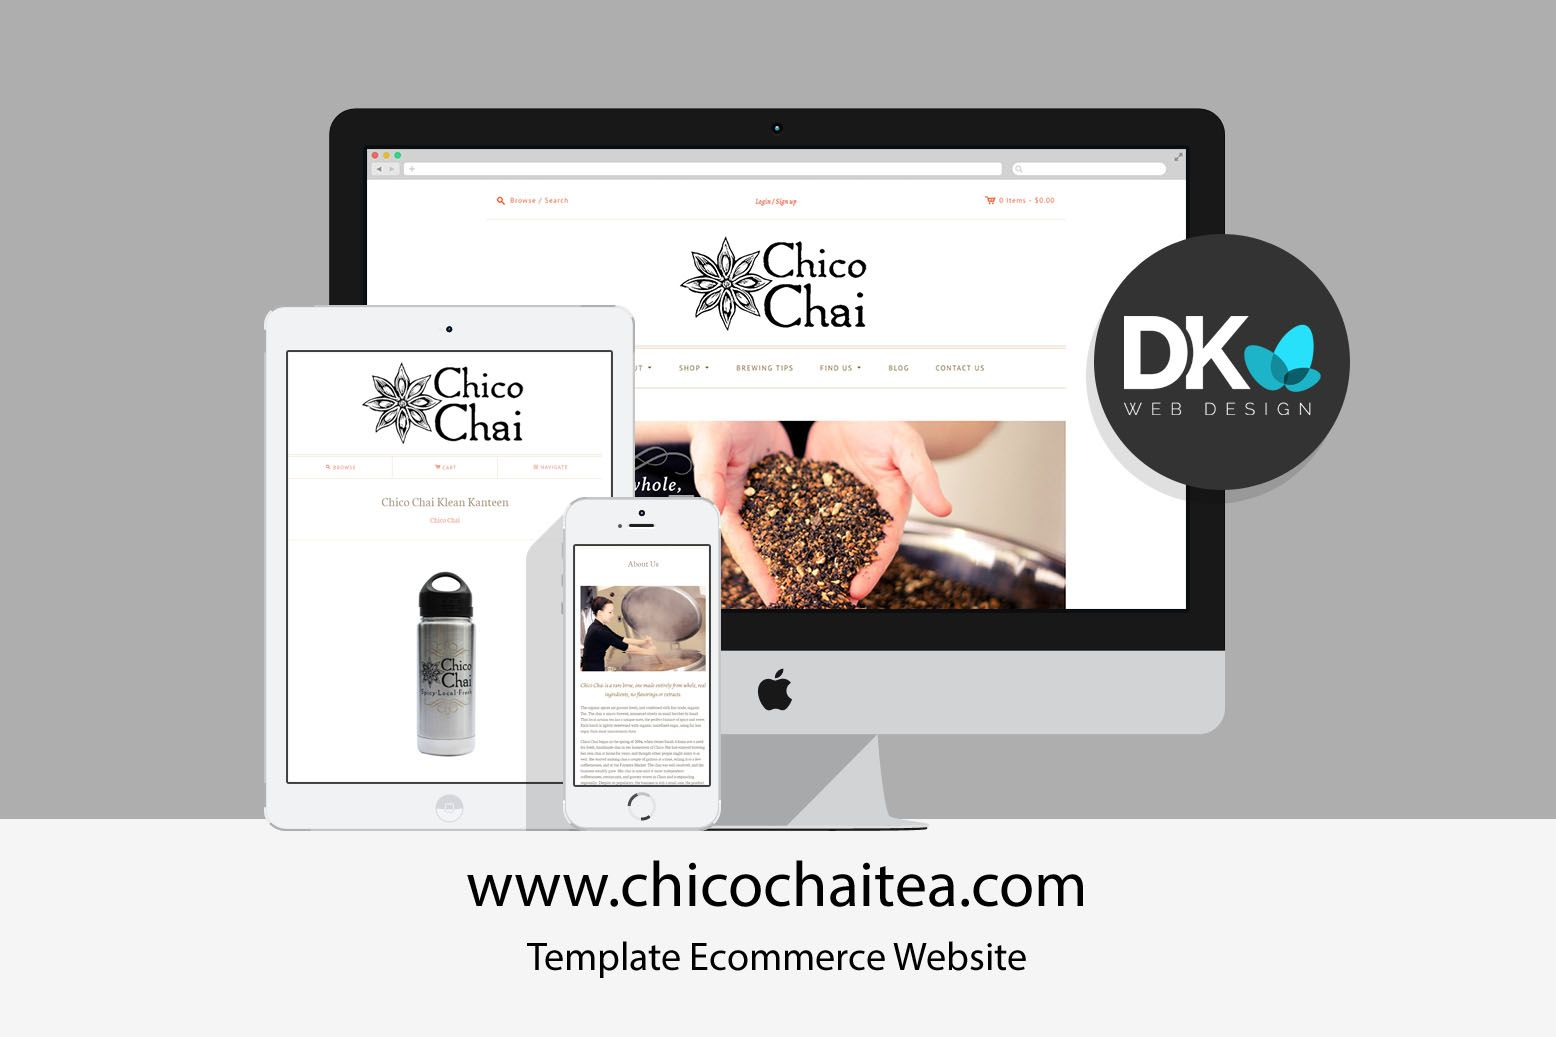 We Developed A Template E Commerce Website For A Local Business Chico Chai Chicochai Chicoca Website Ecommerce Website Design Website Design Web Design